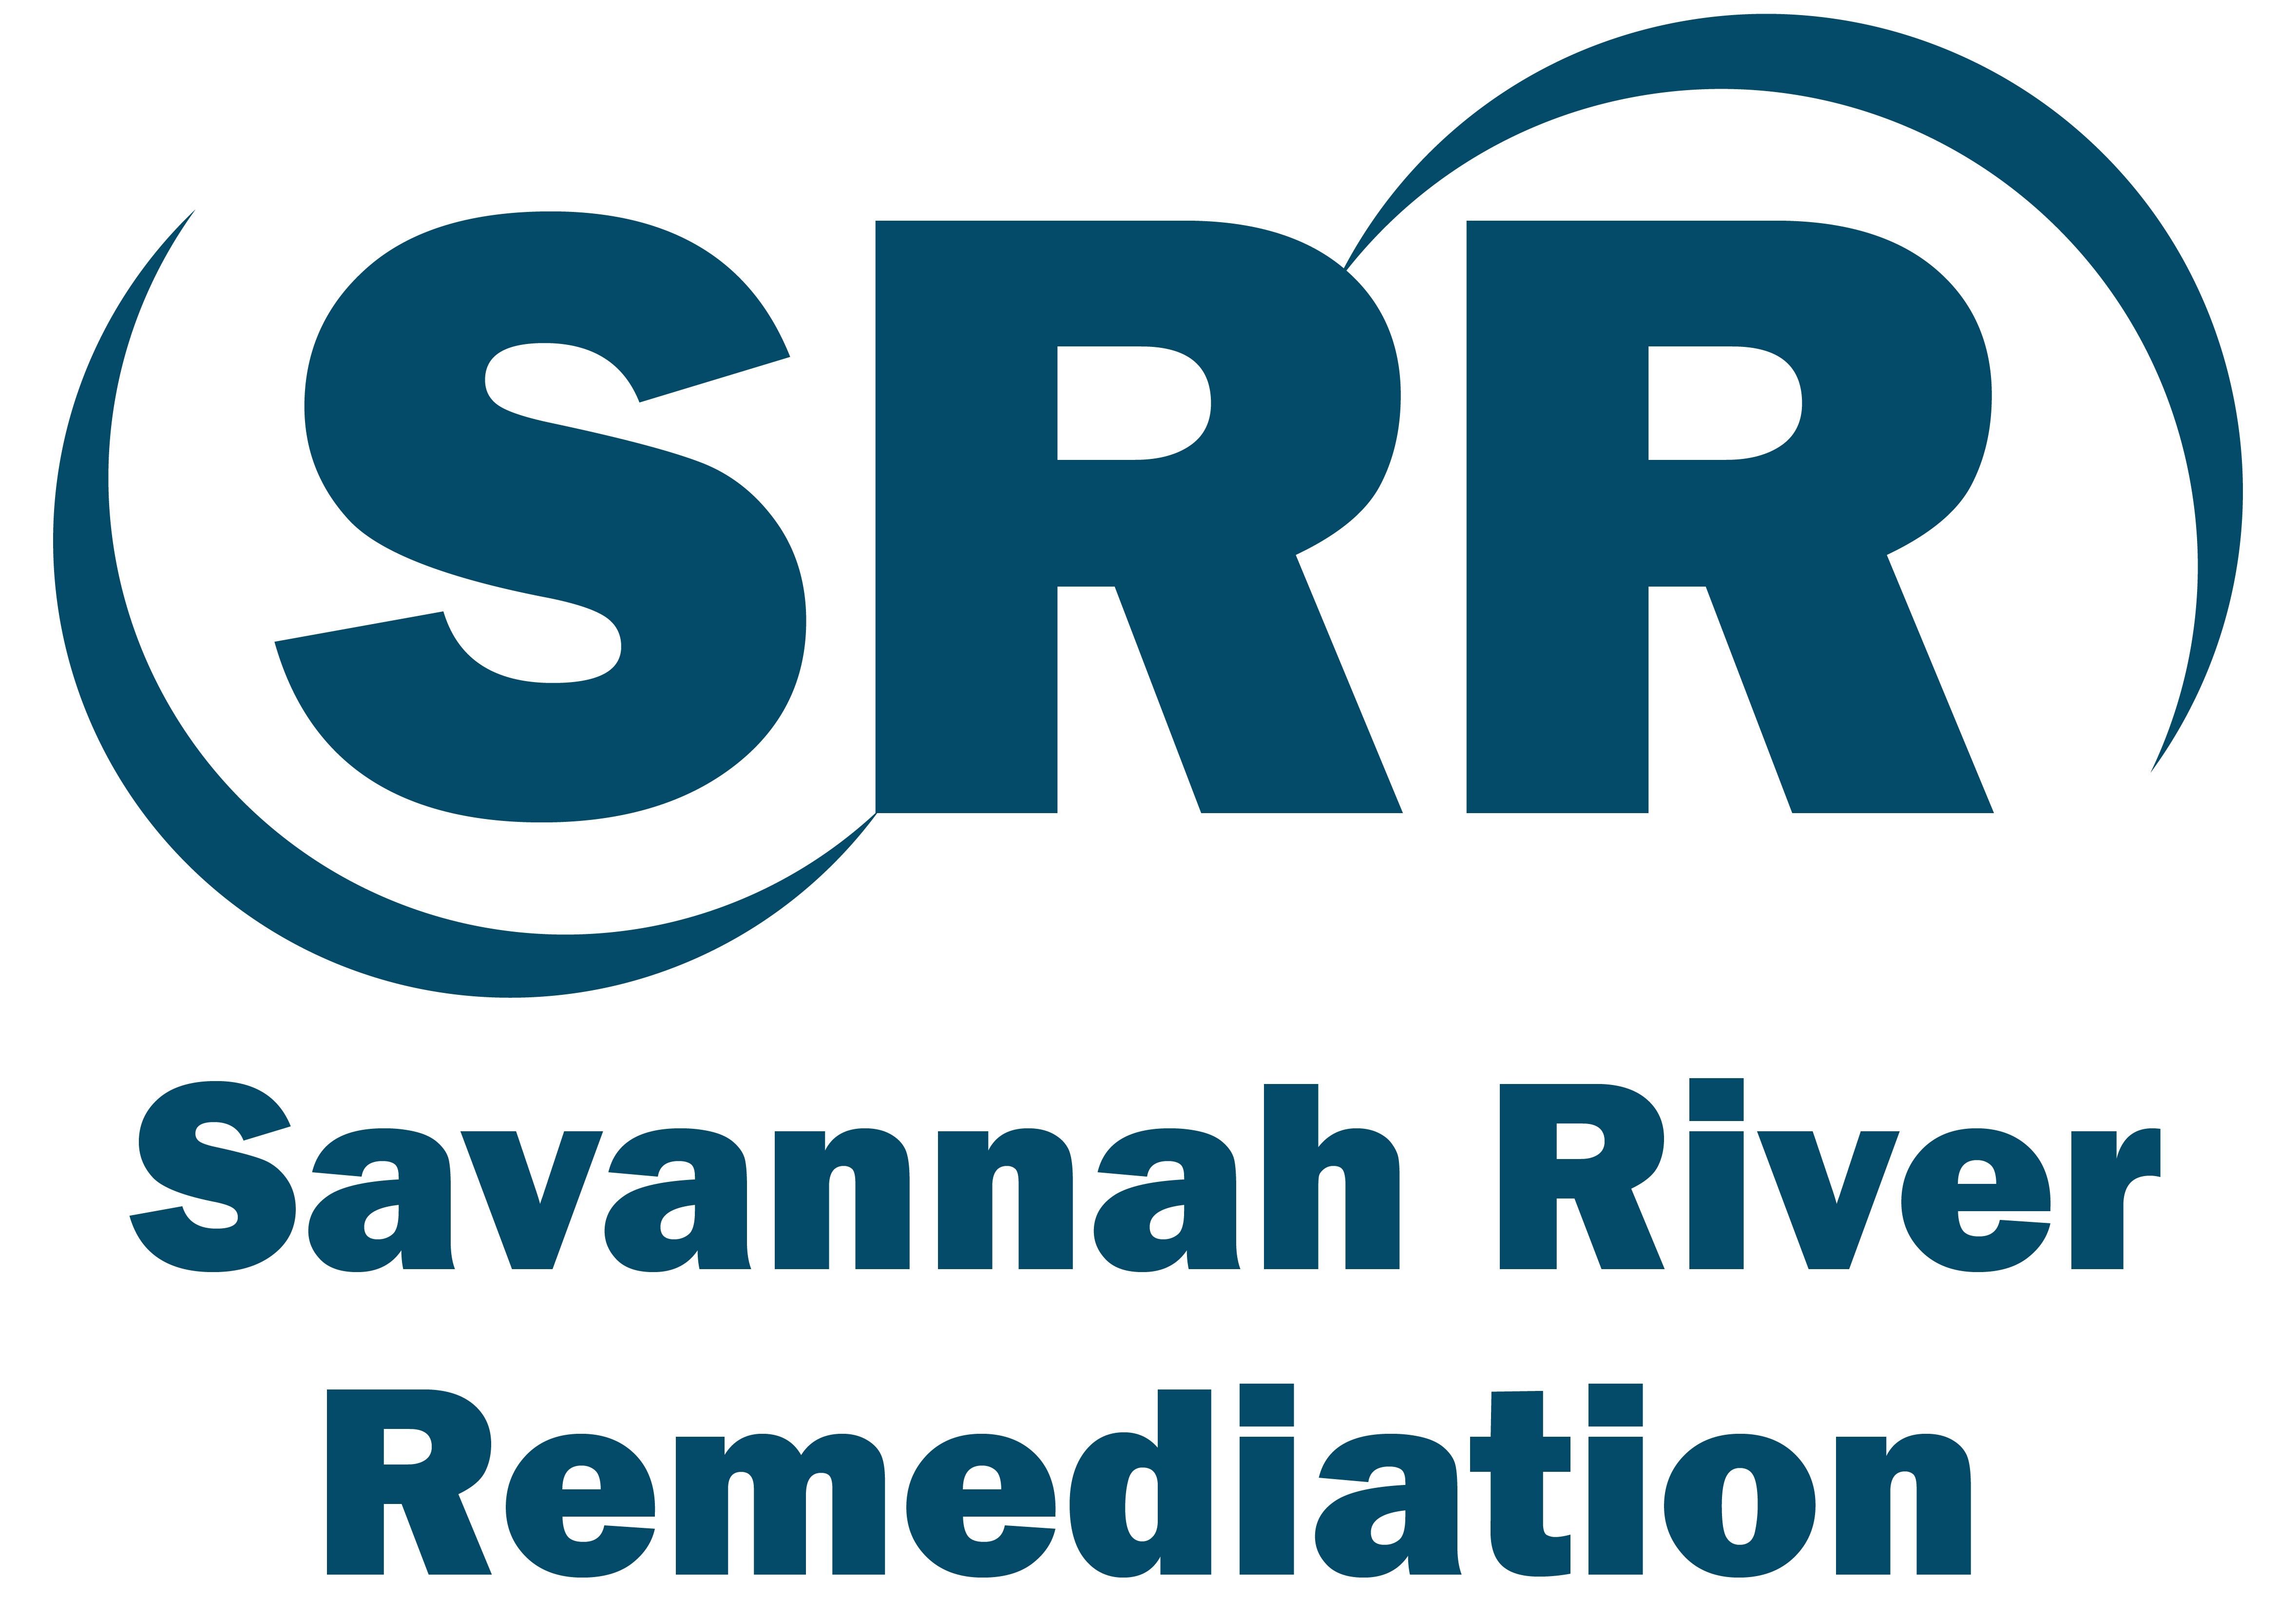 Savannah River Remediation logo